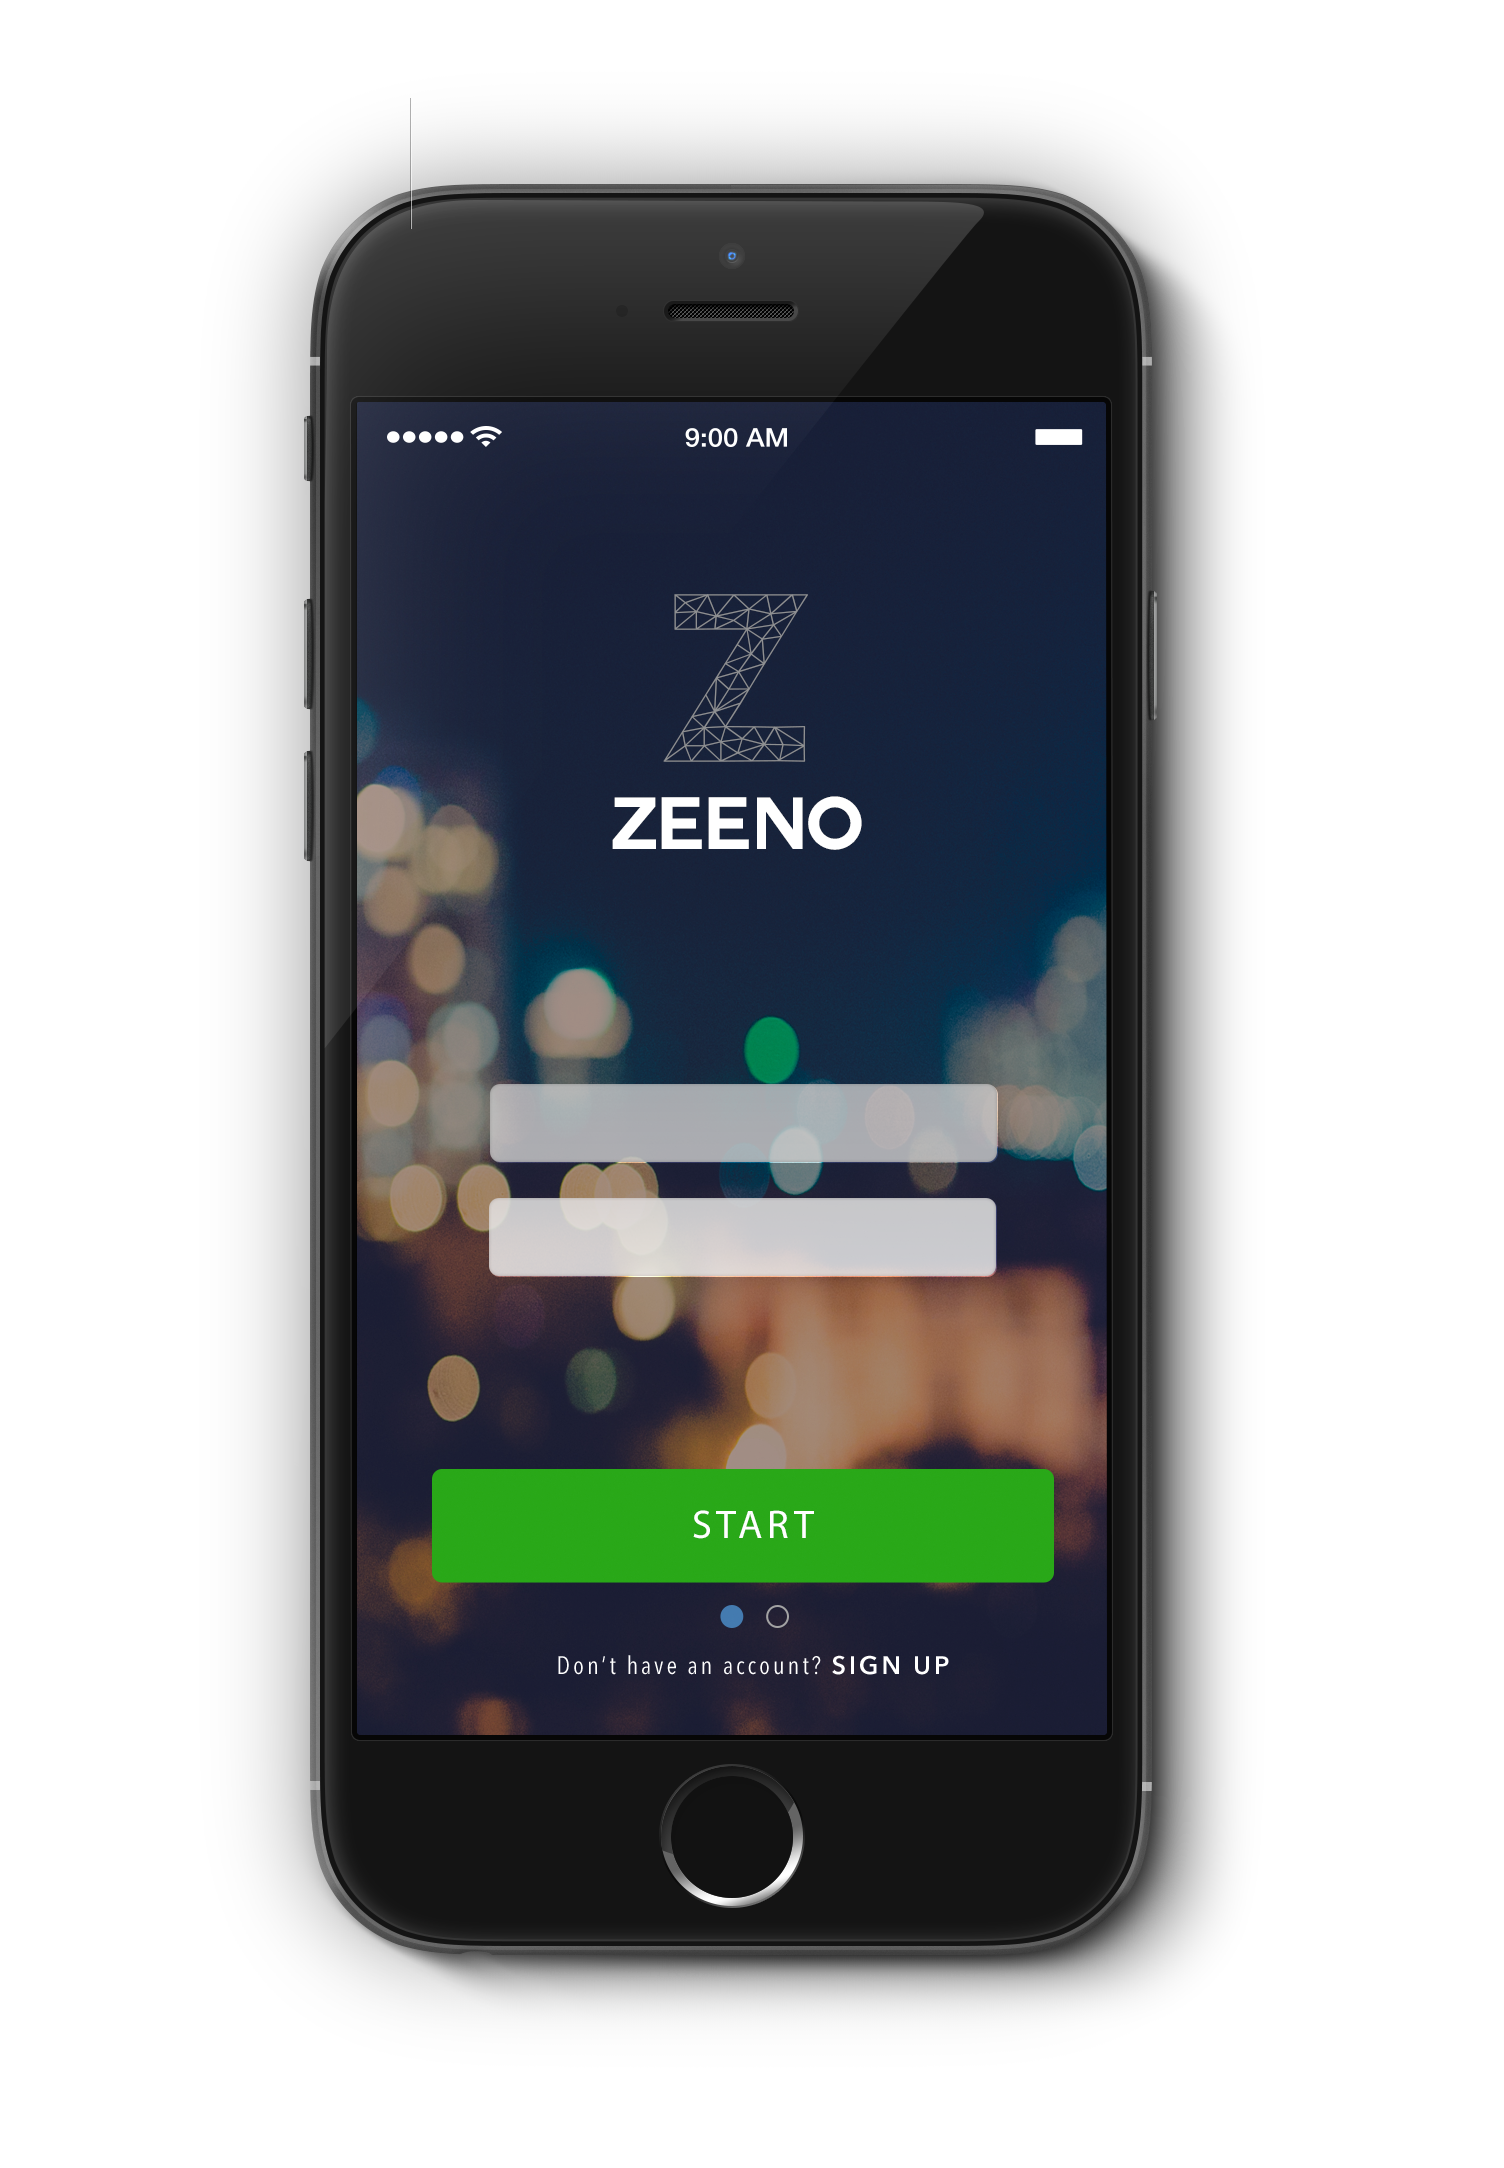 UX Ideation for App Startup